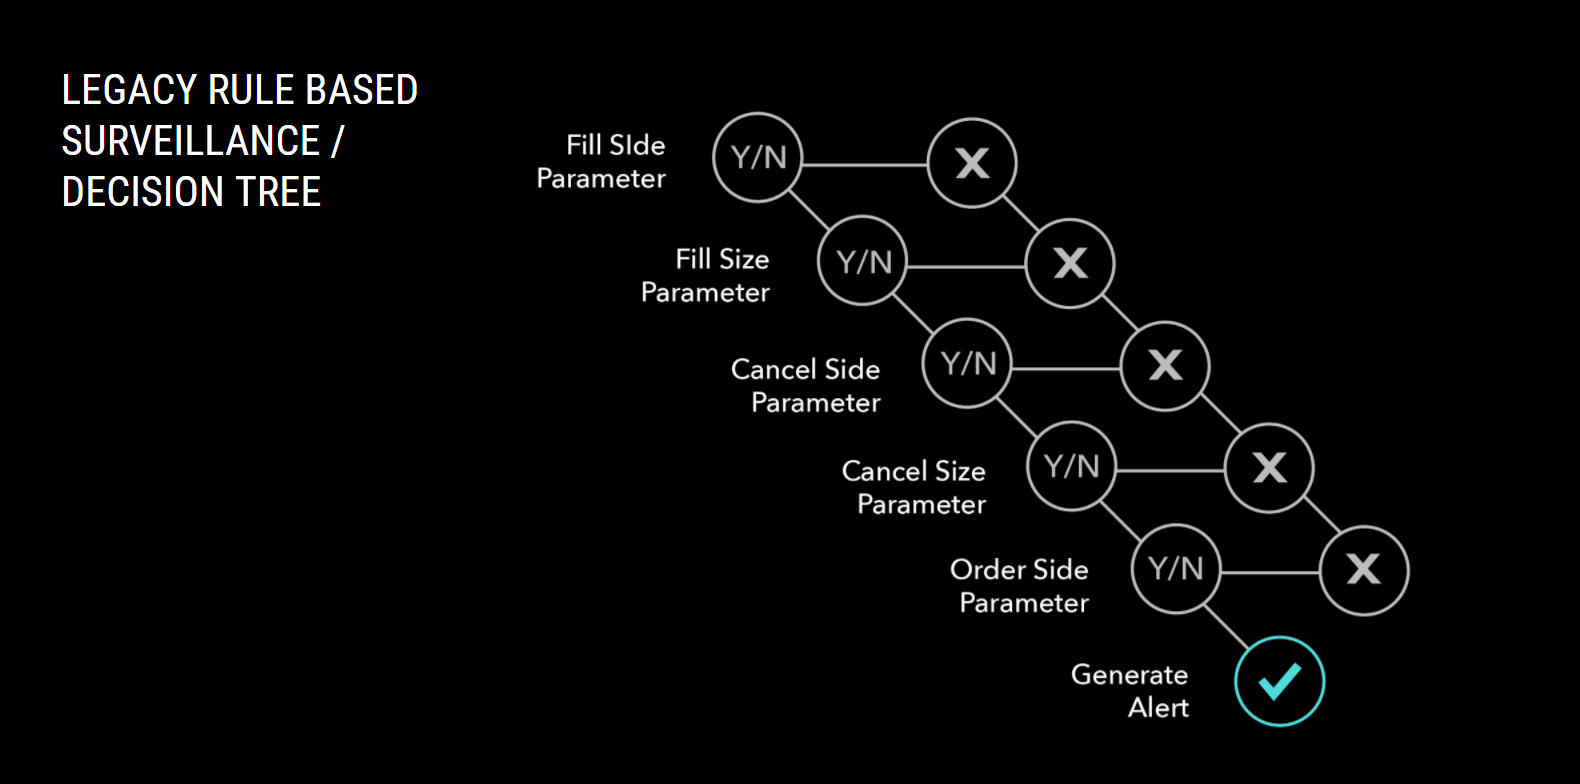 rule based trade surveillance decision tree